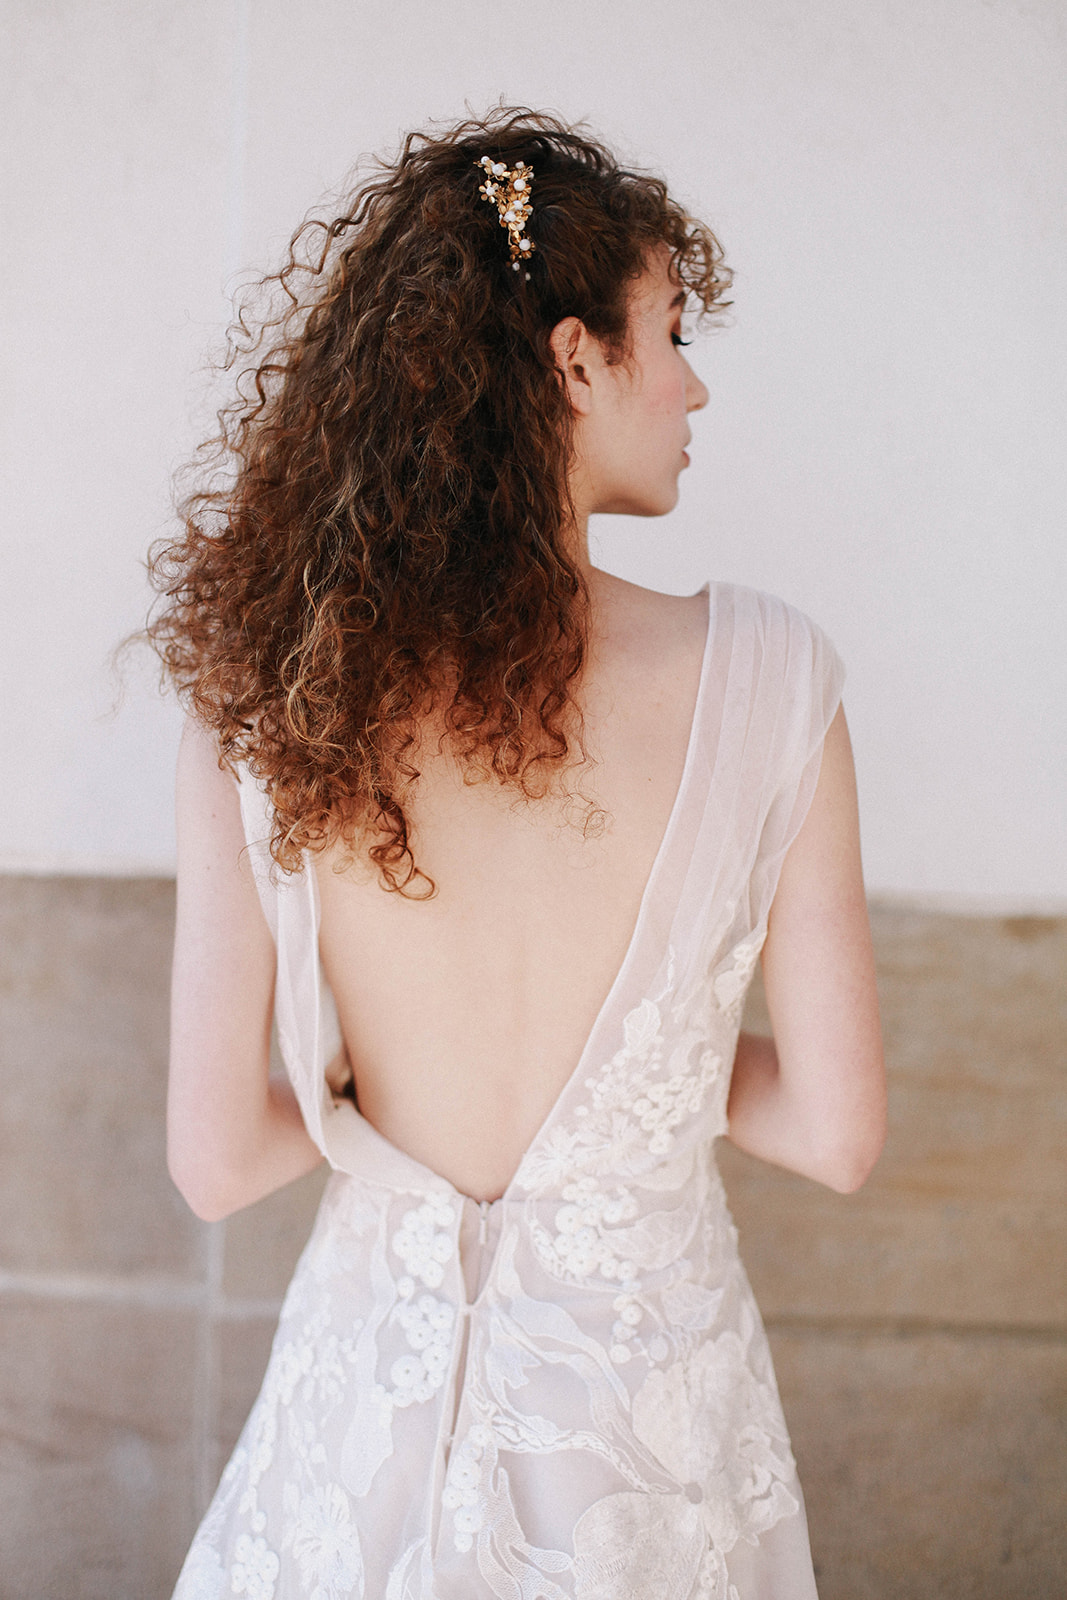 Wedding Dress Inspiration - If you've anything specific in mind, bring some photos along and show your bridal consultant. This may be cut-outs from bridal magazines, a Pinterest page, or maybe just screen grabs from Instagram. Any and all will do!